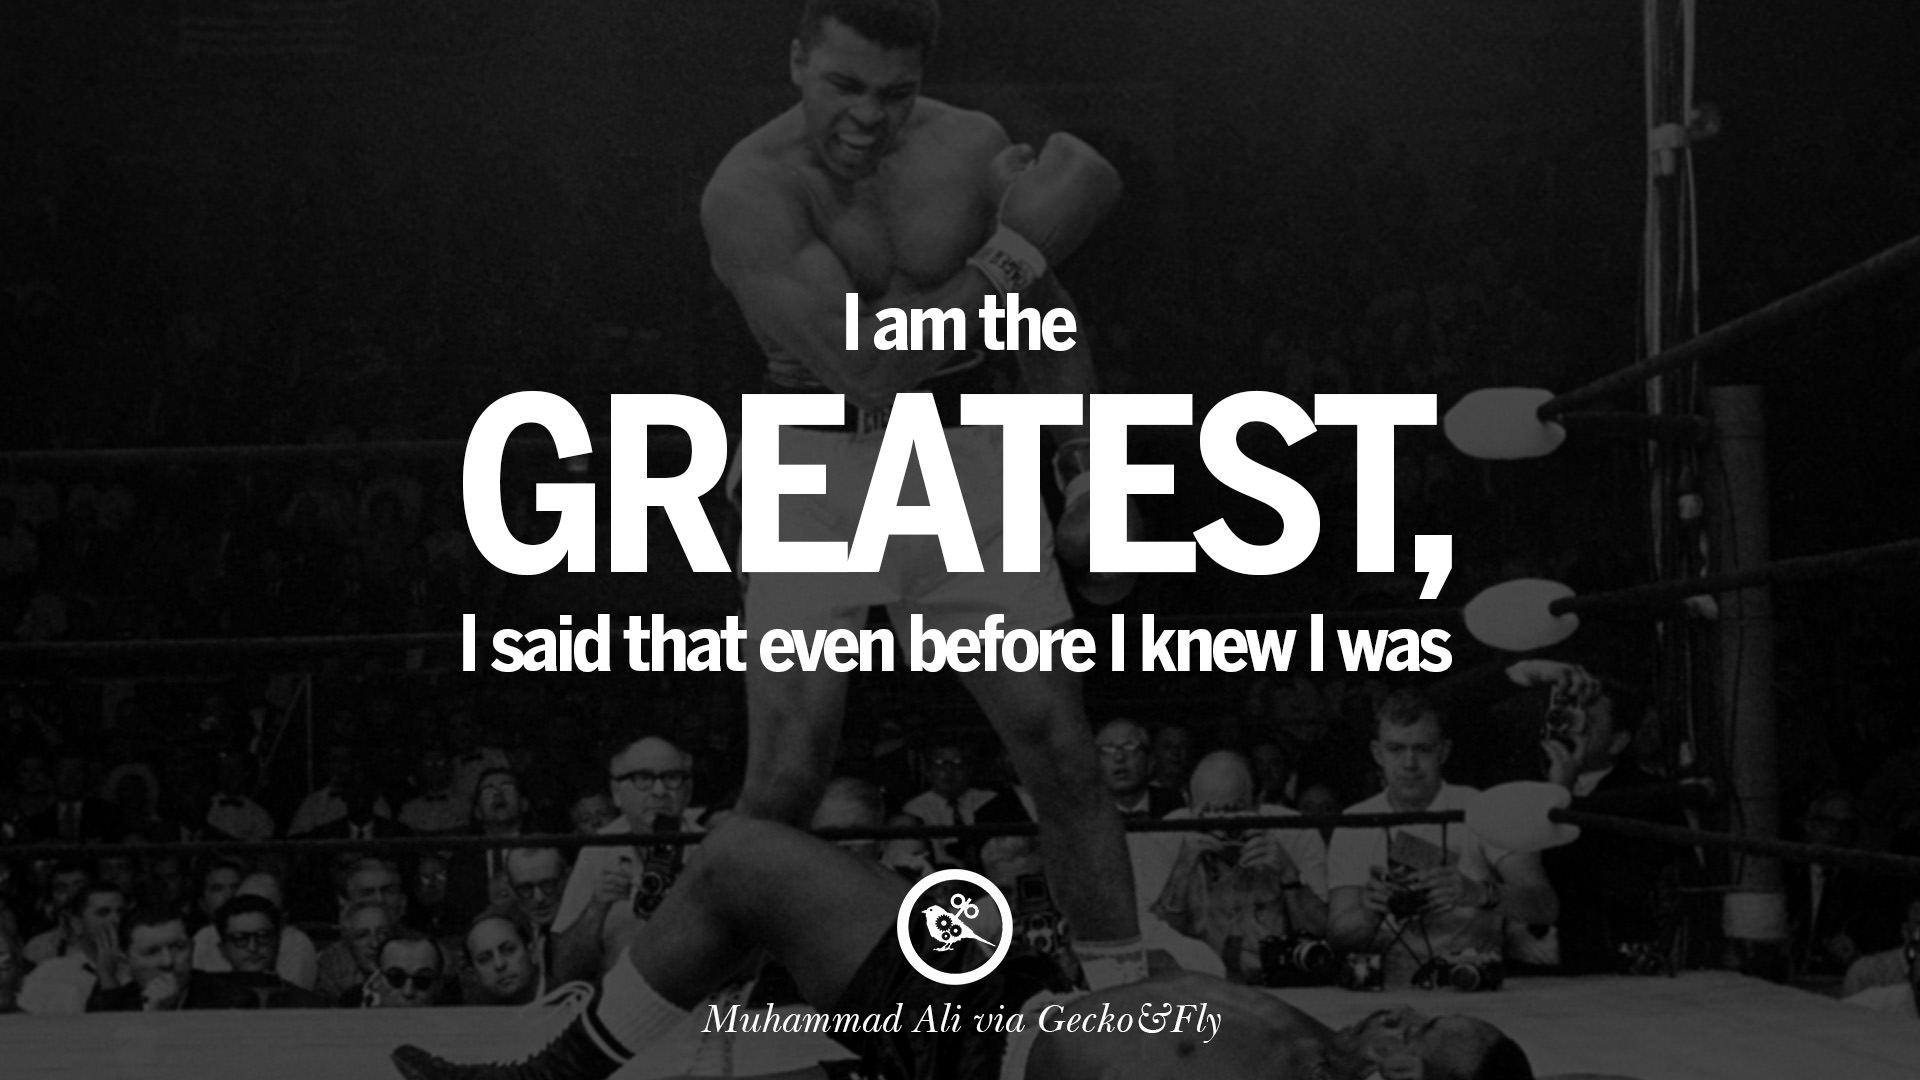 ... am the greatest, I said that even before I knew I was. - Muhammad Ali